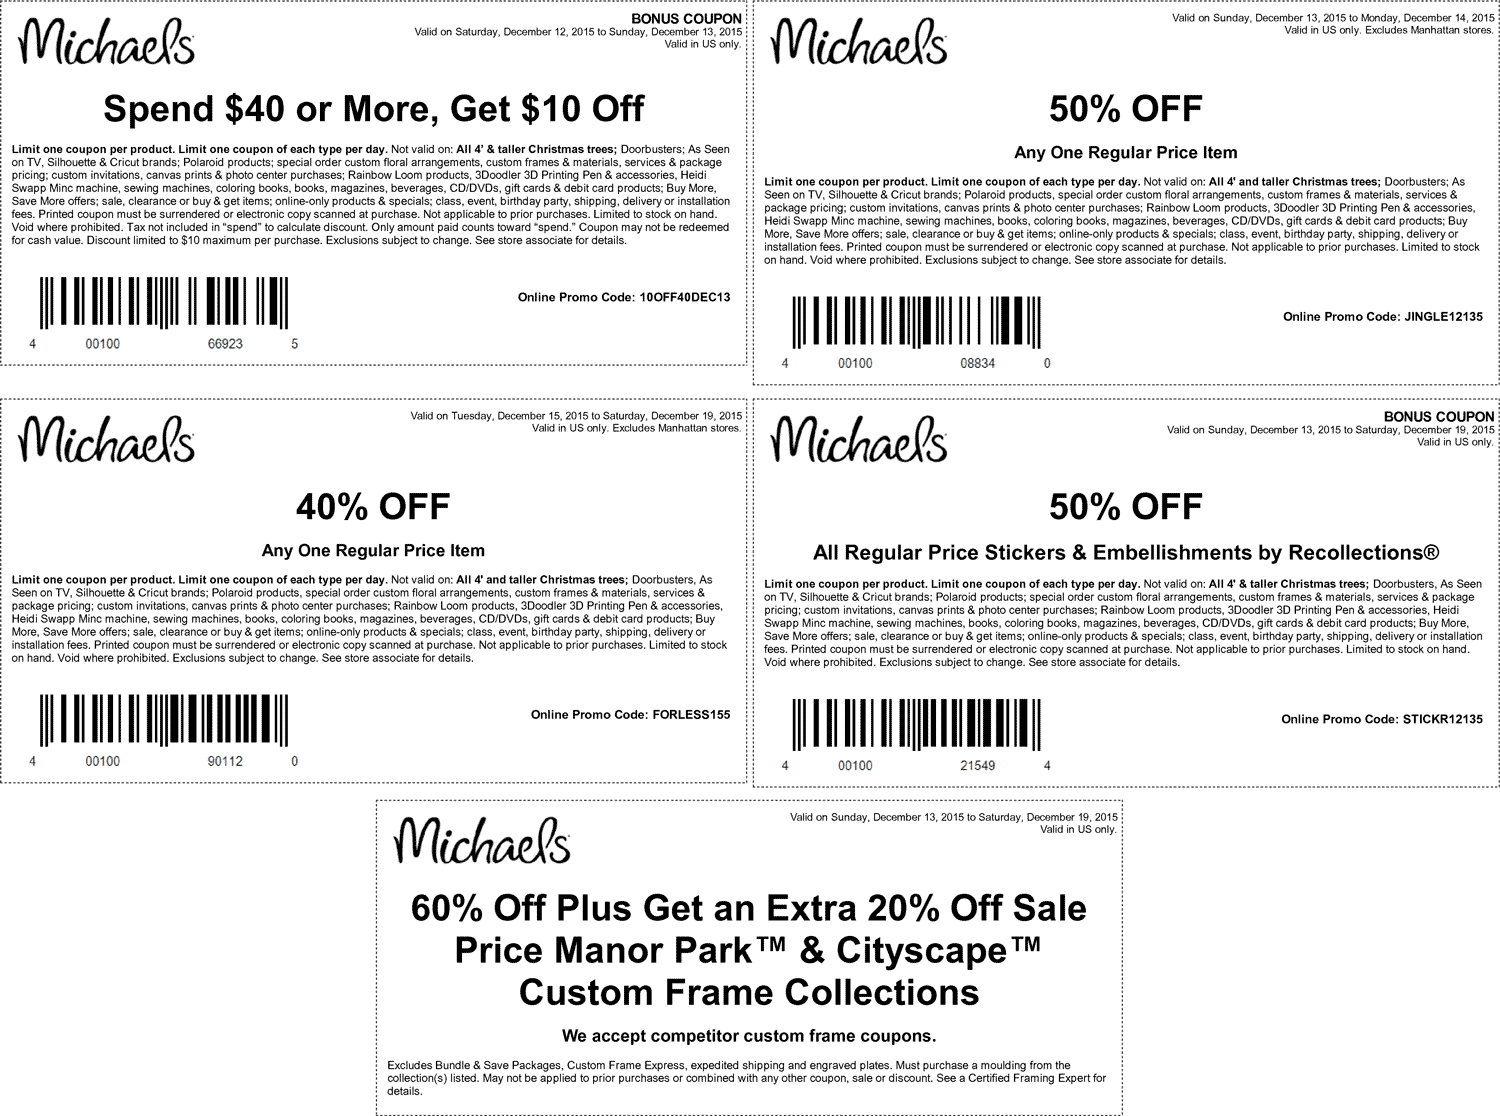 Michaels Coupon October 2016 50% off a single item & more at Michaels, or online via promo code JINGLE12135